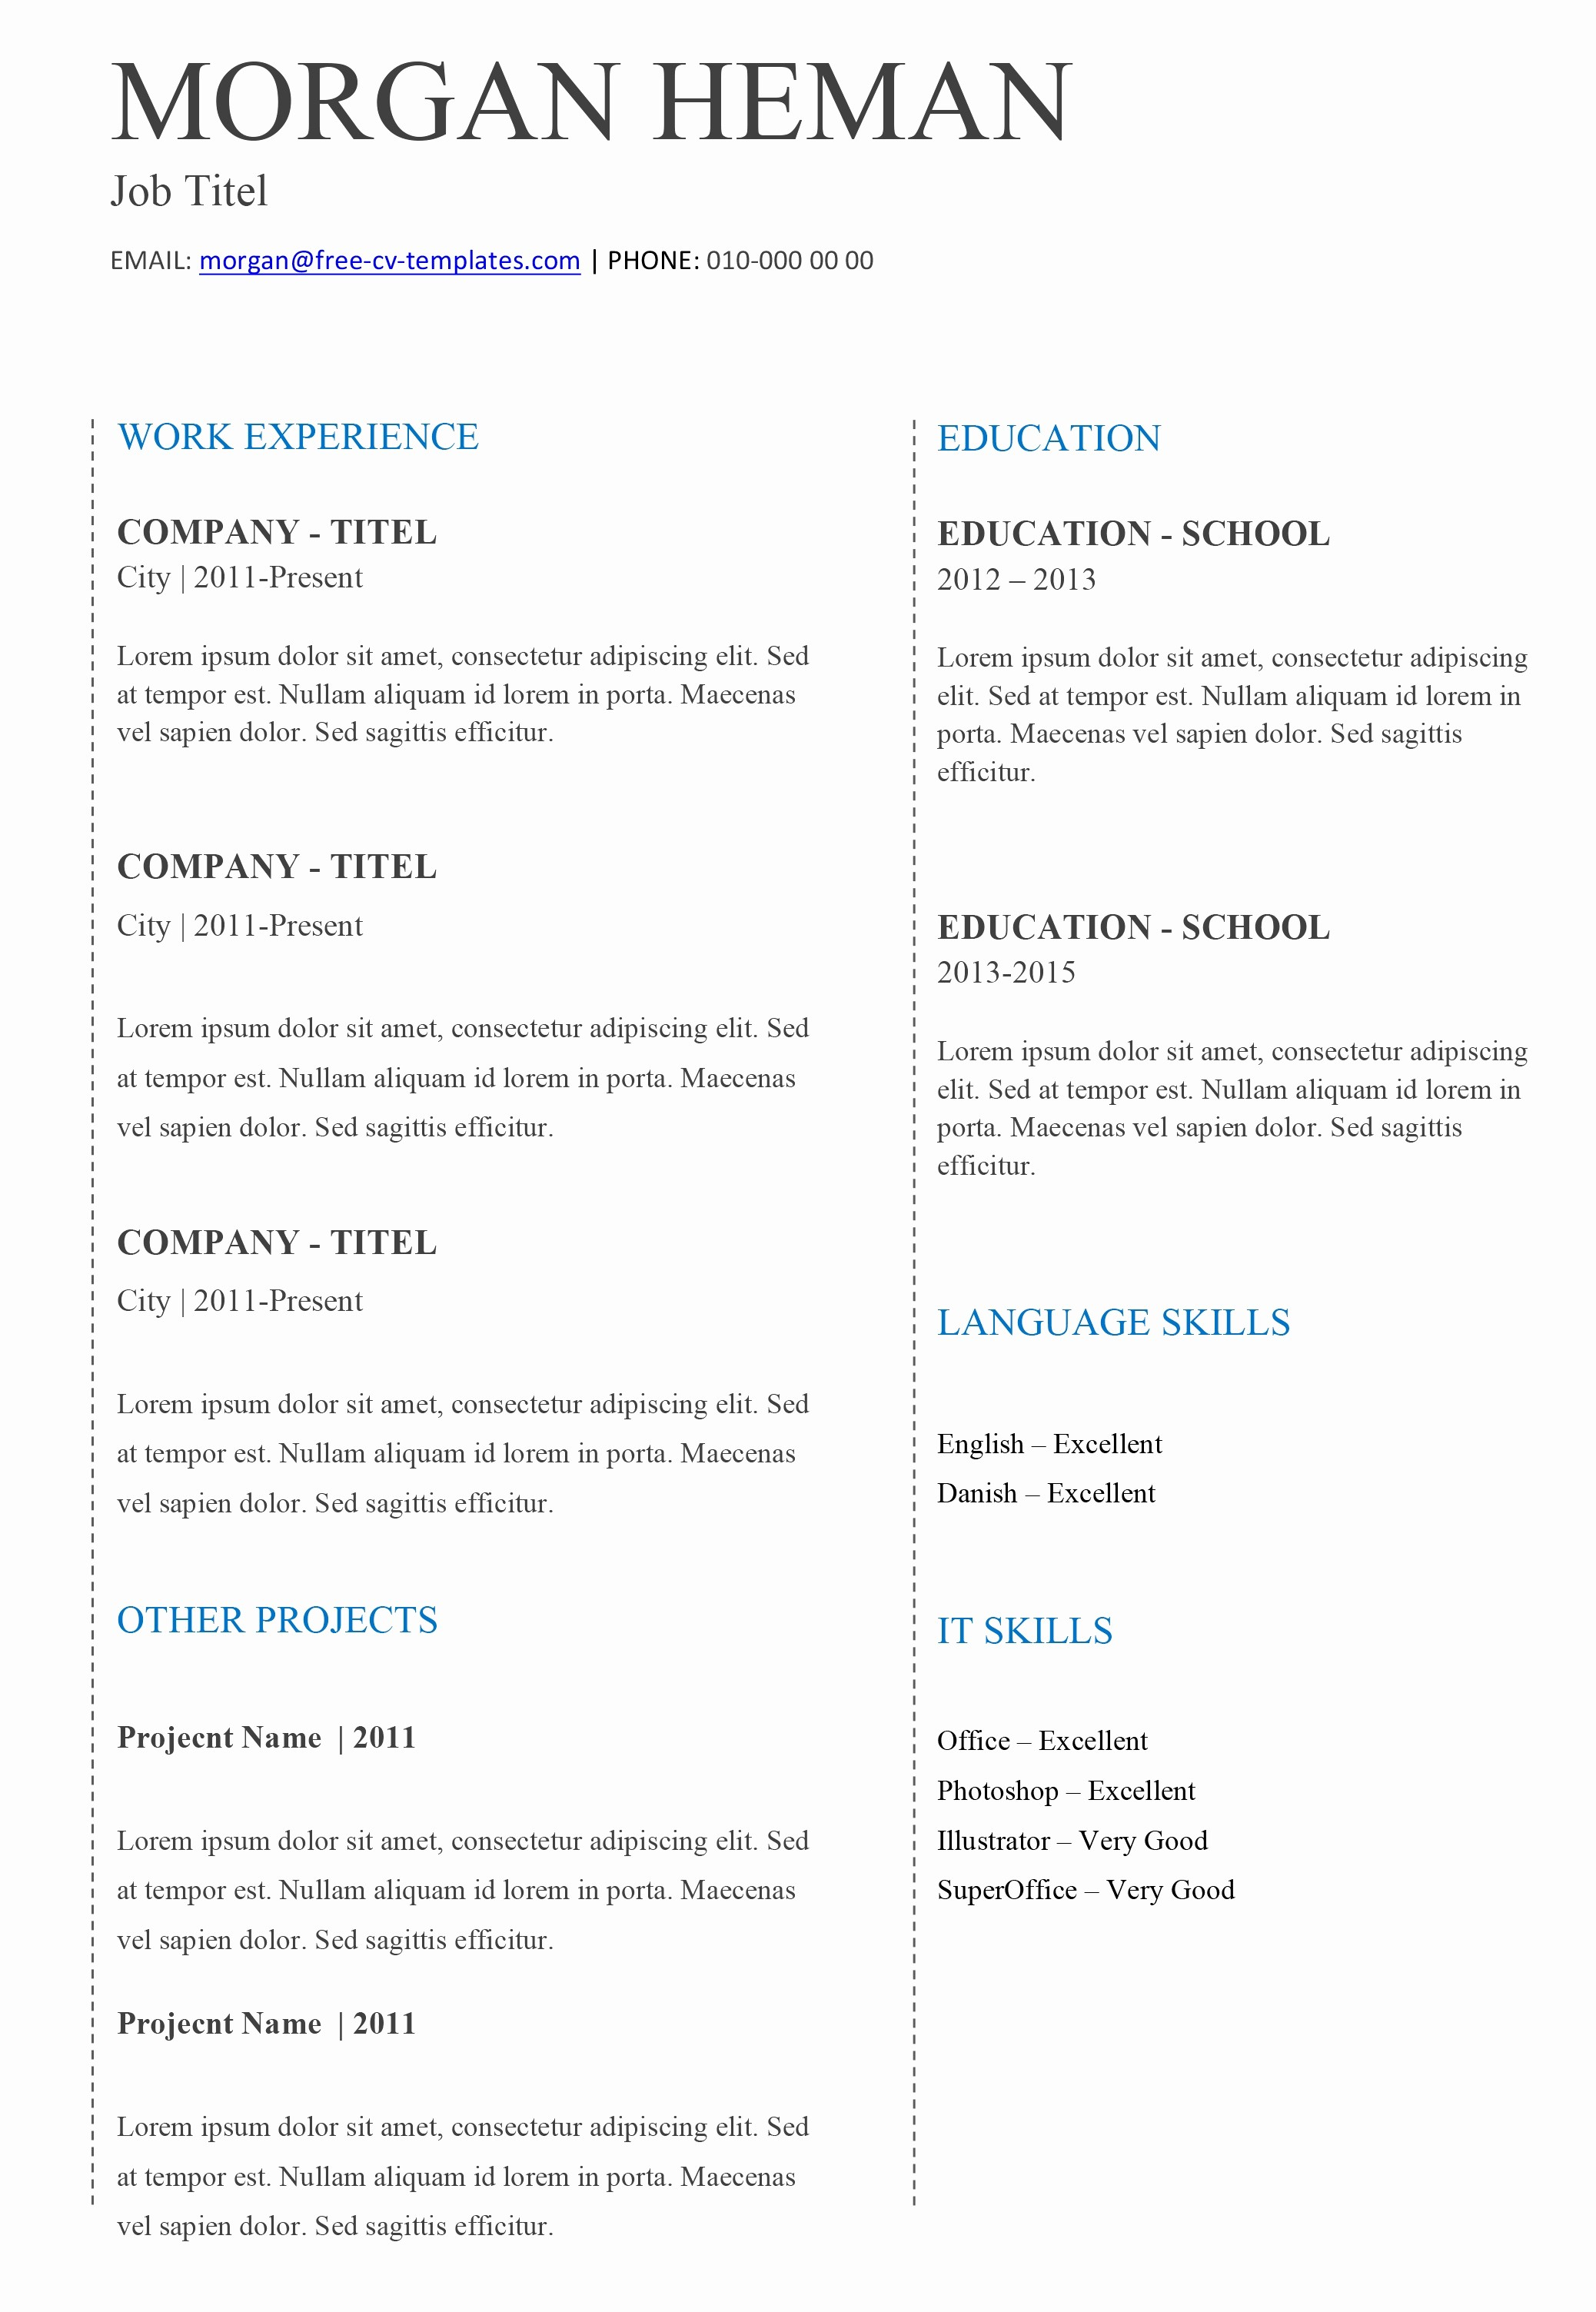 Microsoft Word 2003 Resume Templates Luxury Microsoft Word 2003 Resume Templates Inspirational 5